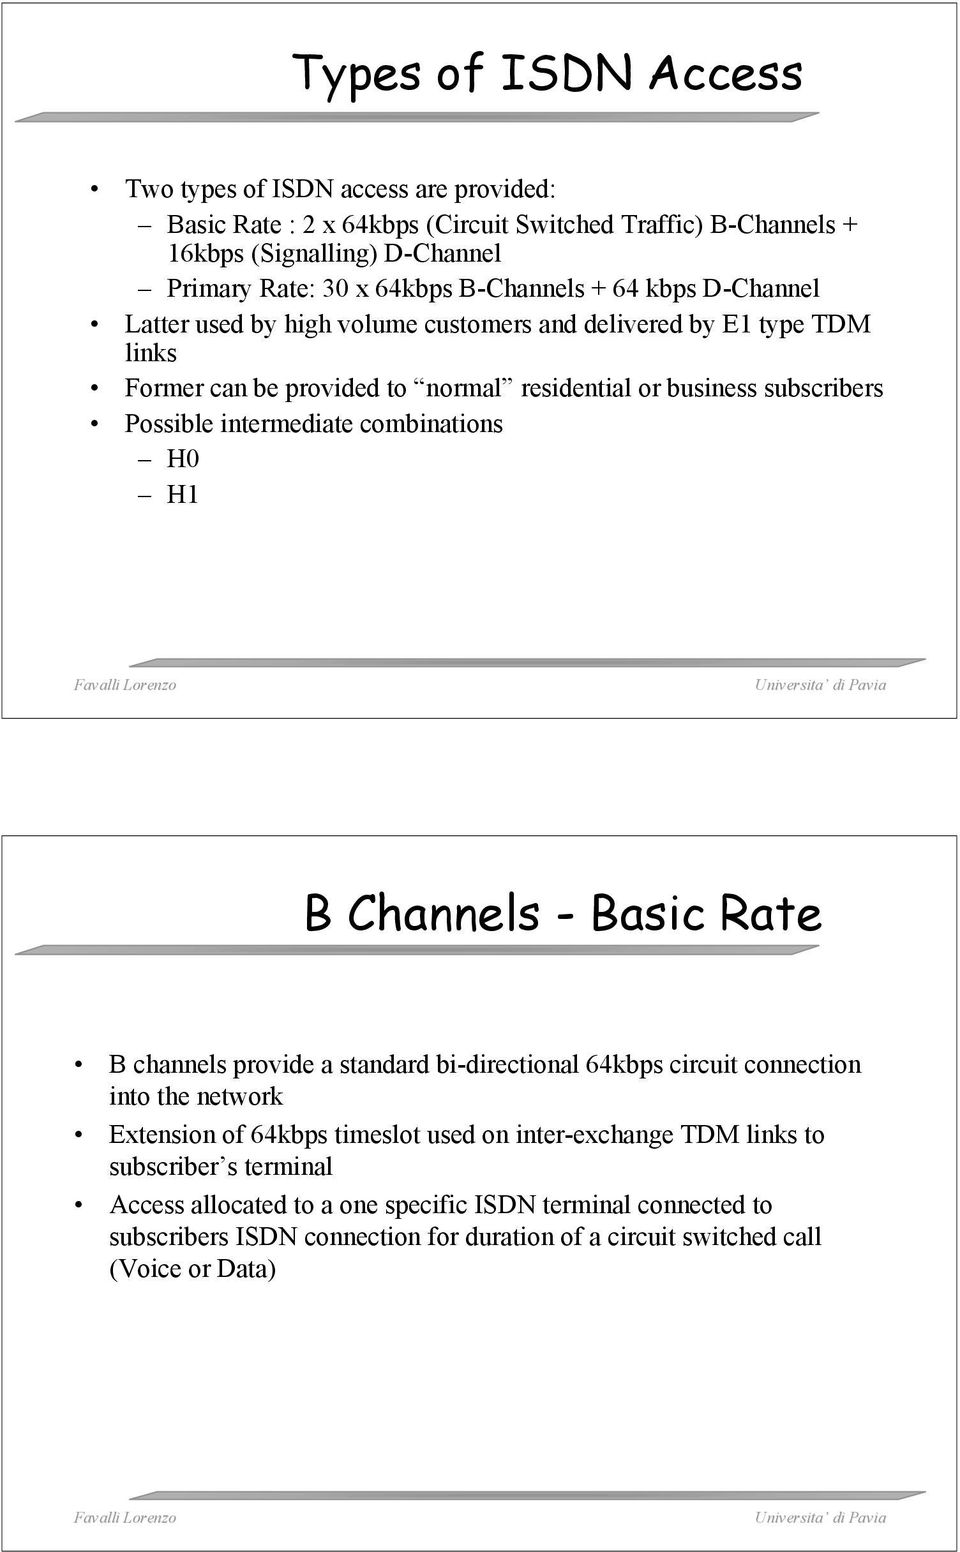 intermediate combinations H0 H1 B Channels - Basic Rate B channels provide a standard bi-directional 64kbps circuit connection into the network Extension of 64kbps timeslot used on